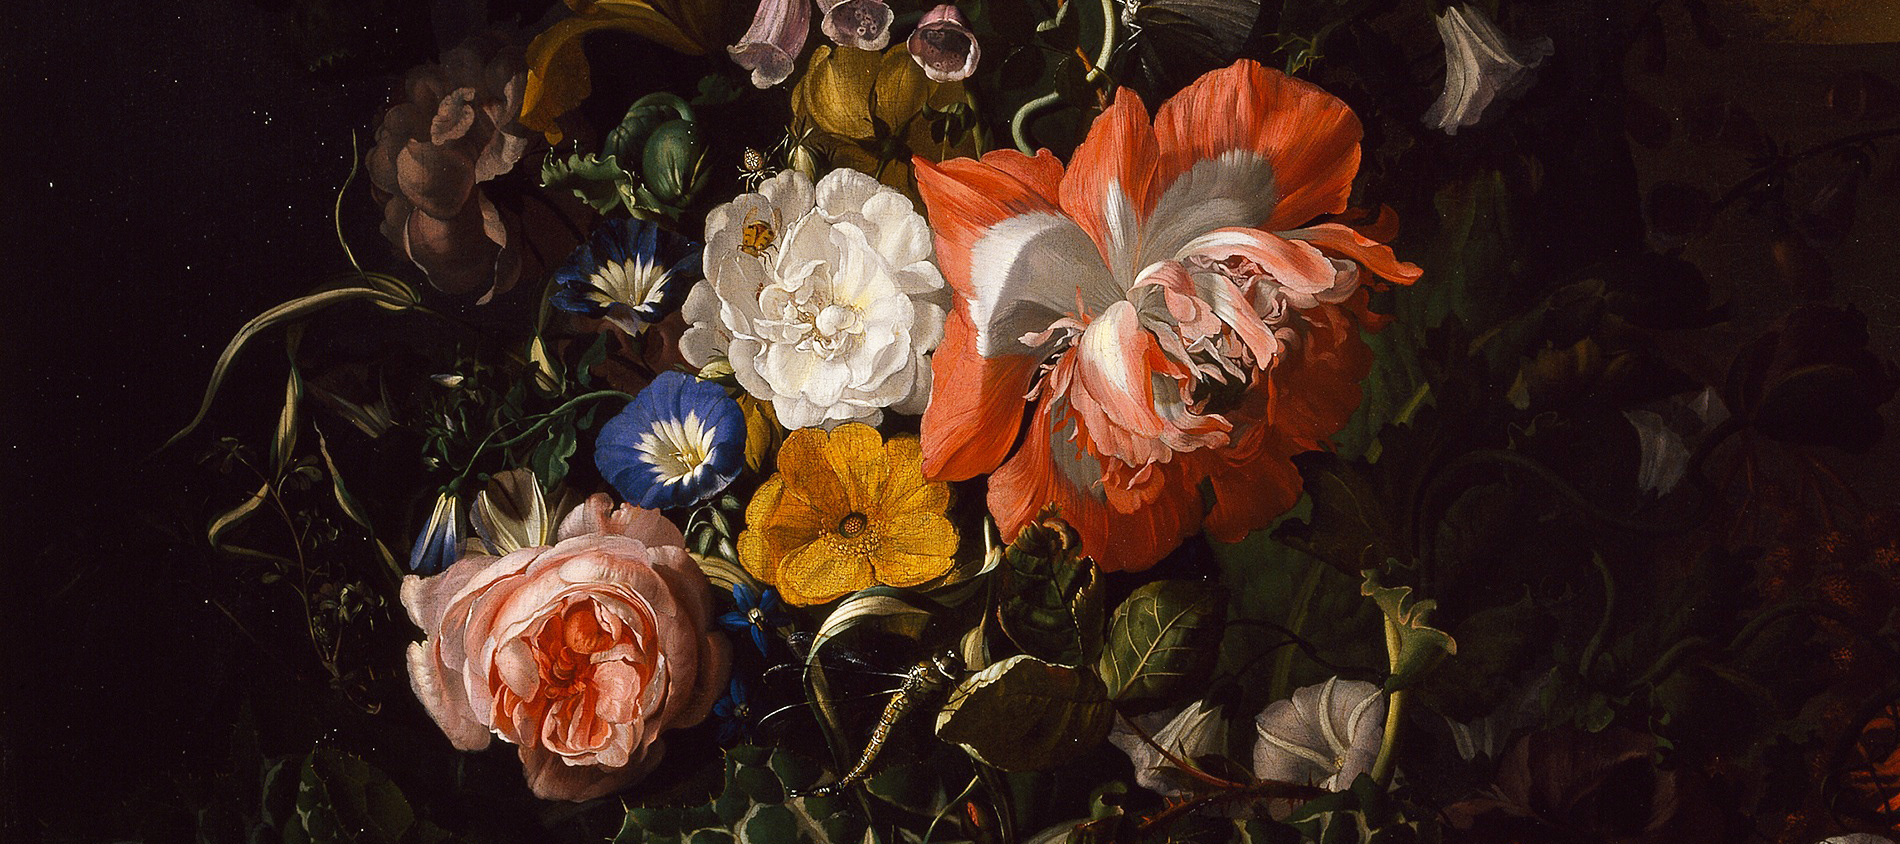 Detail: Roses, Convolvulus, Poppies and other flowers in an Urn on a Stone Ledge by Rachel Ruysch